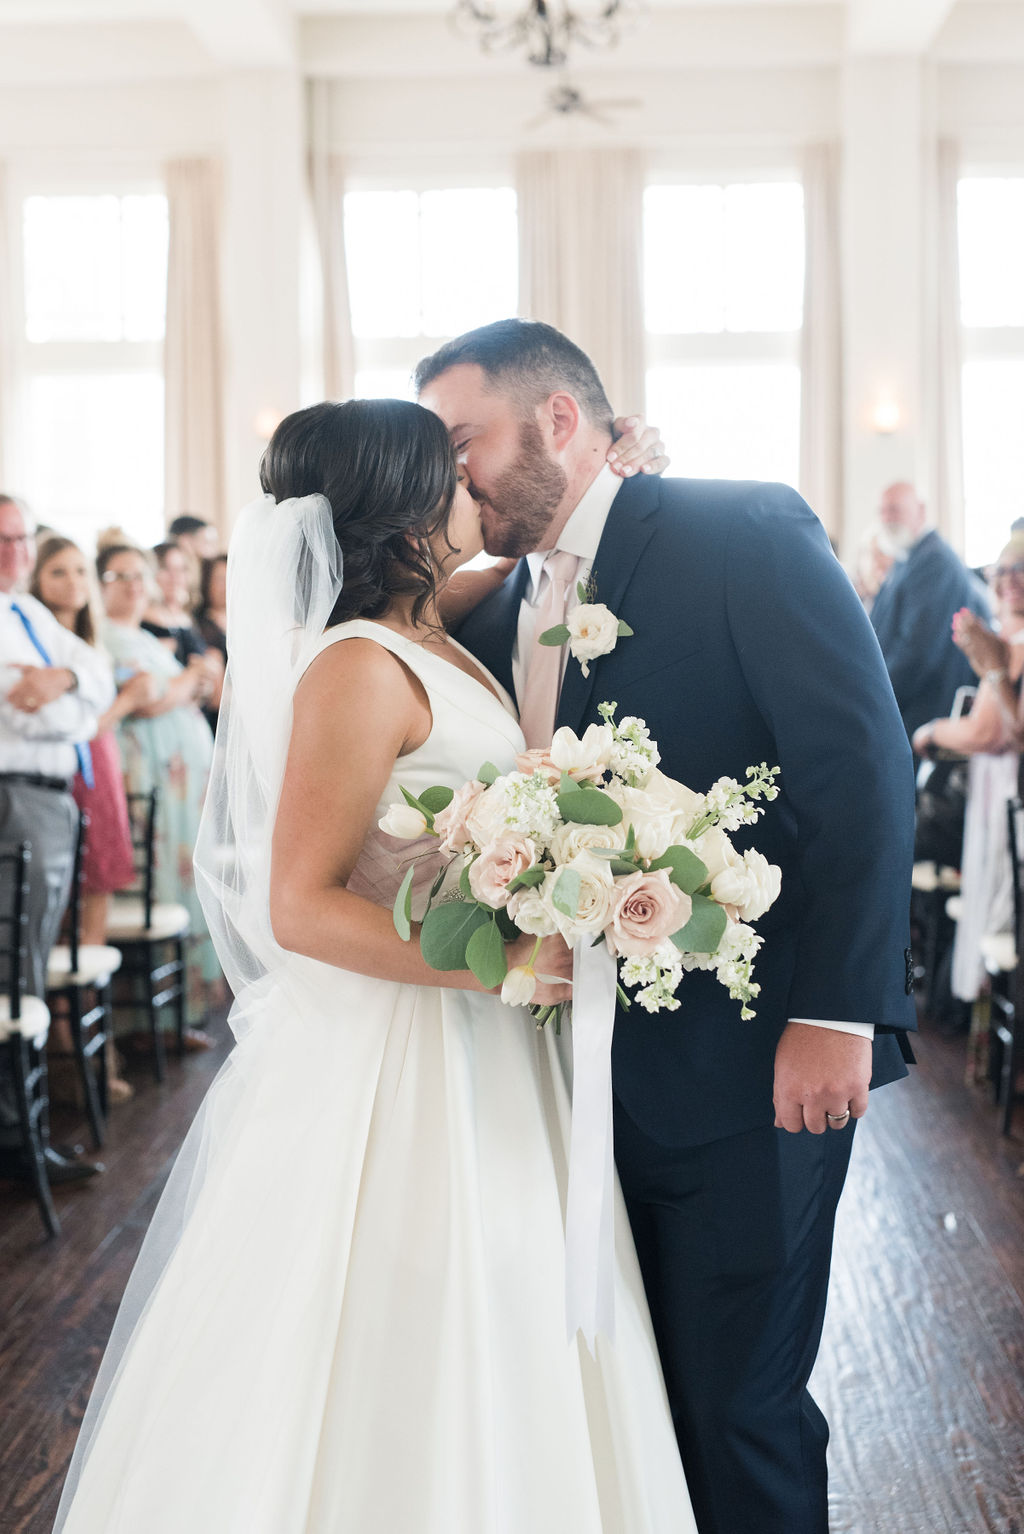 Bride and groom: Dusty Blue and Blush Wedding at The Room on Main featured on Alexa Kay Events!